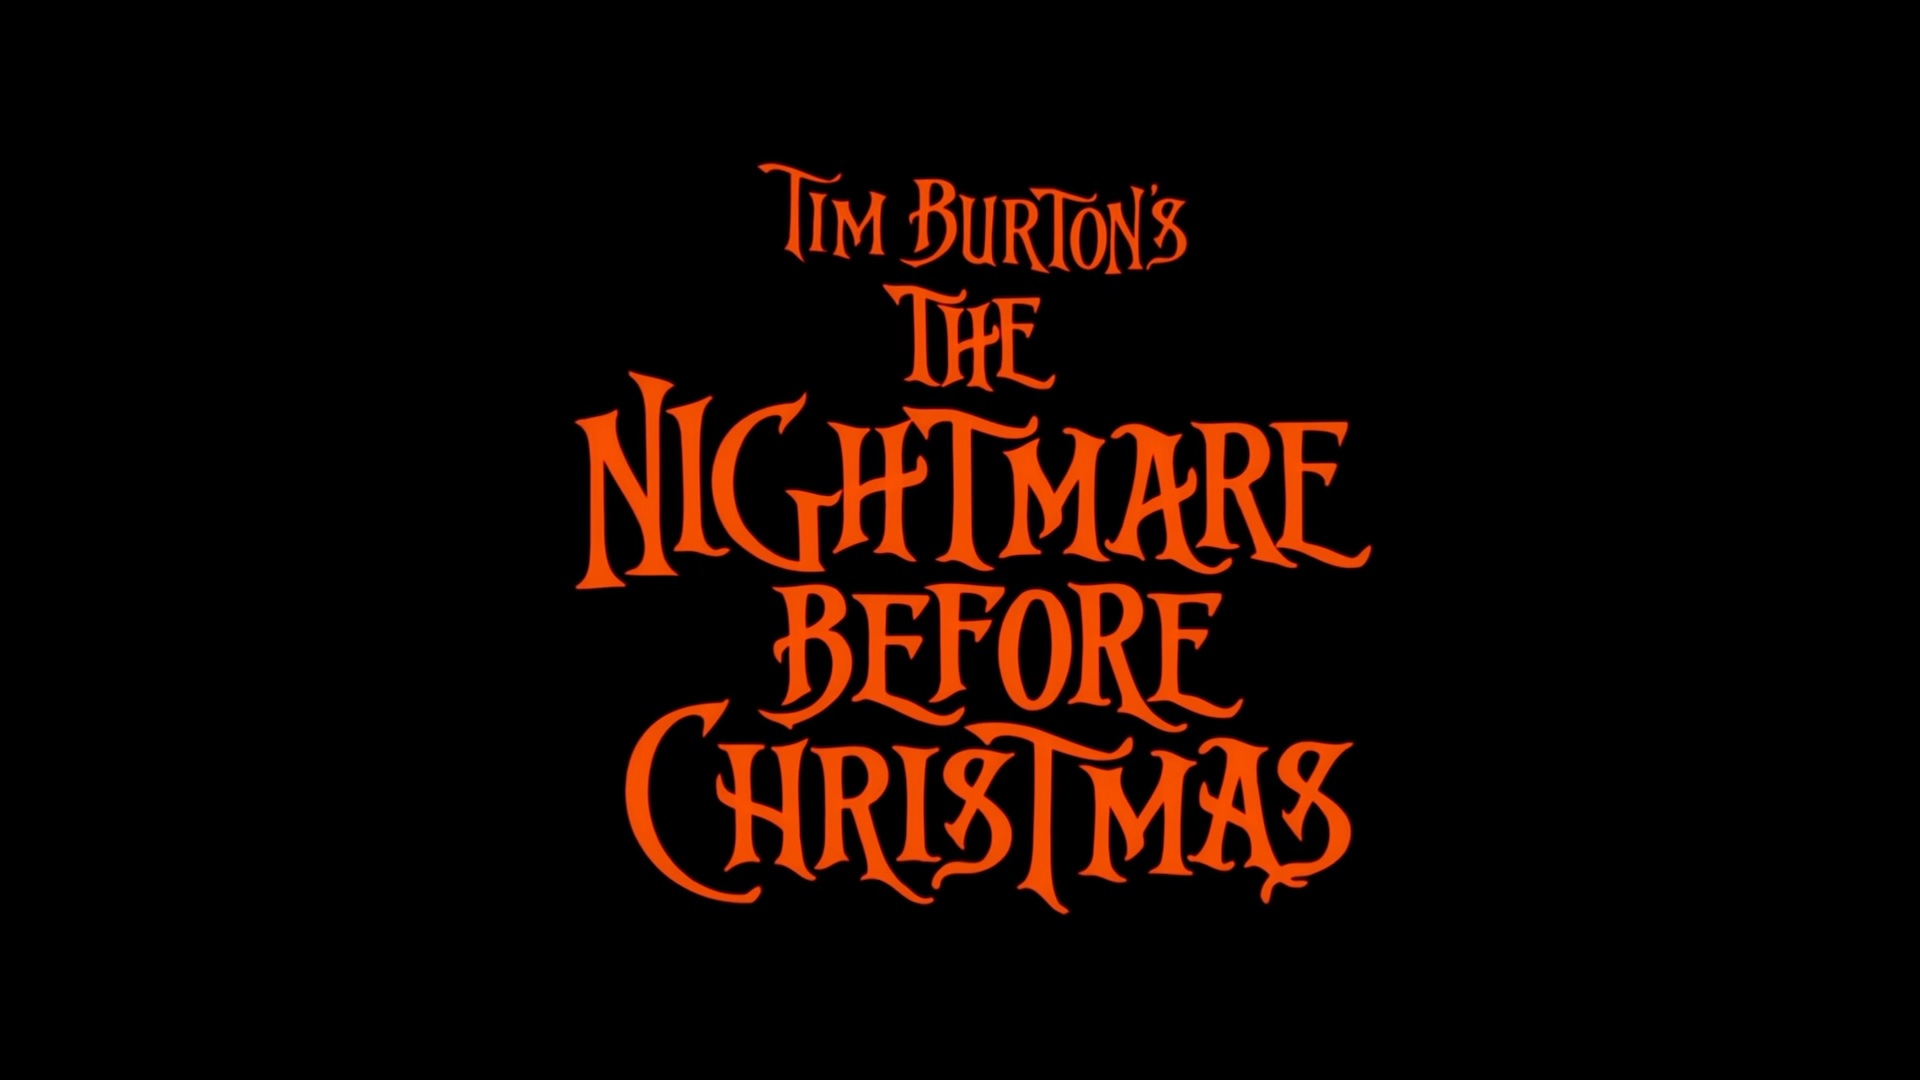 Tim Burton Christmas Carol.The Nightmare Before Christmas Christmas Specials Wiki